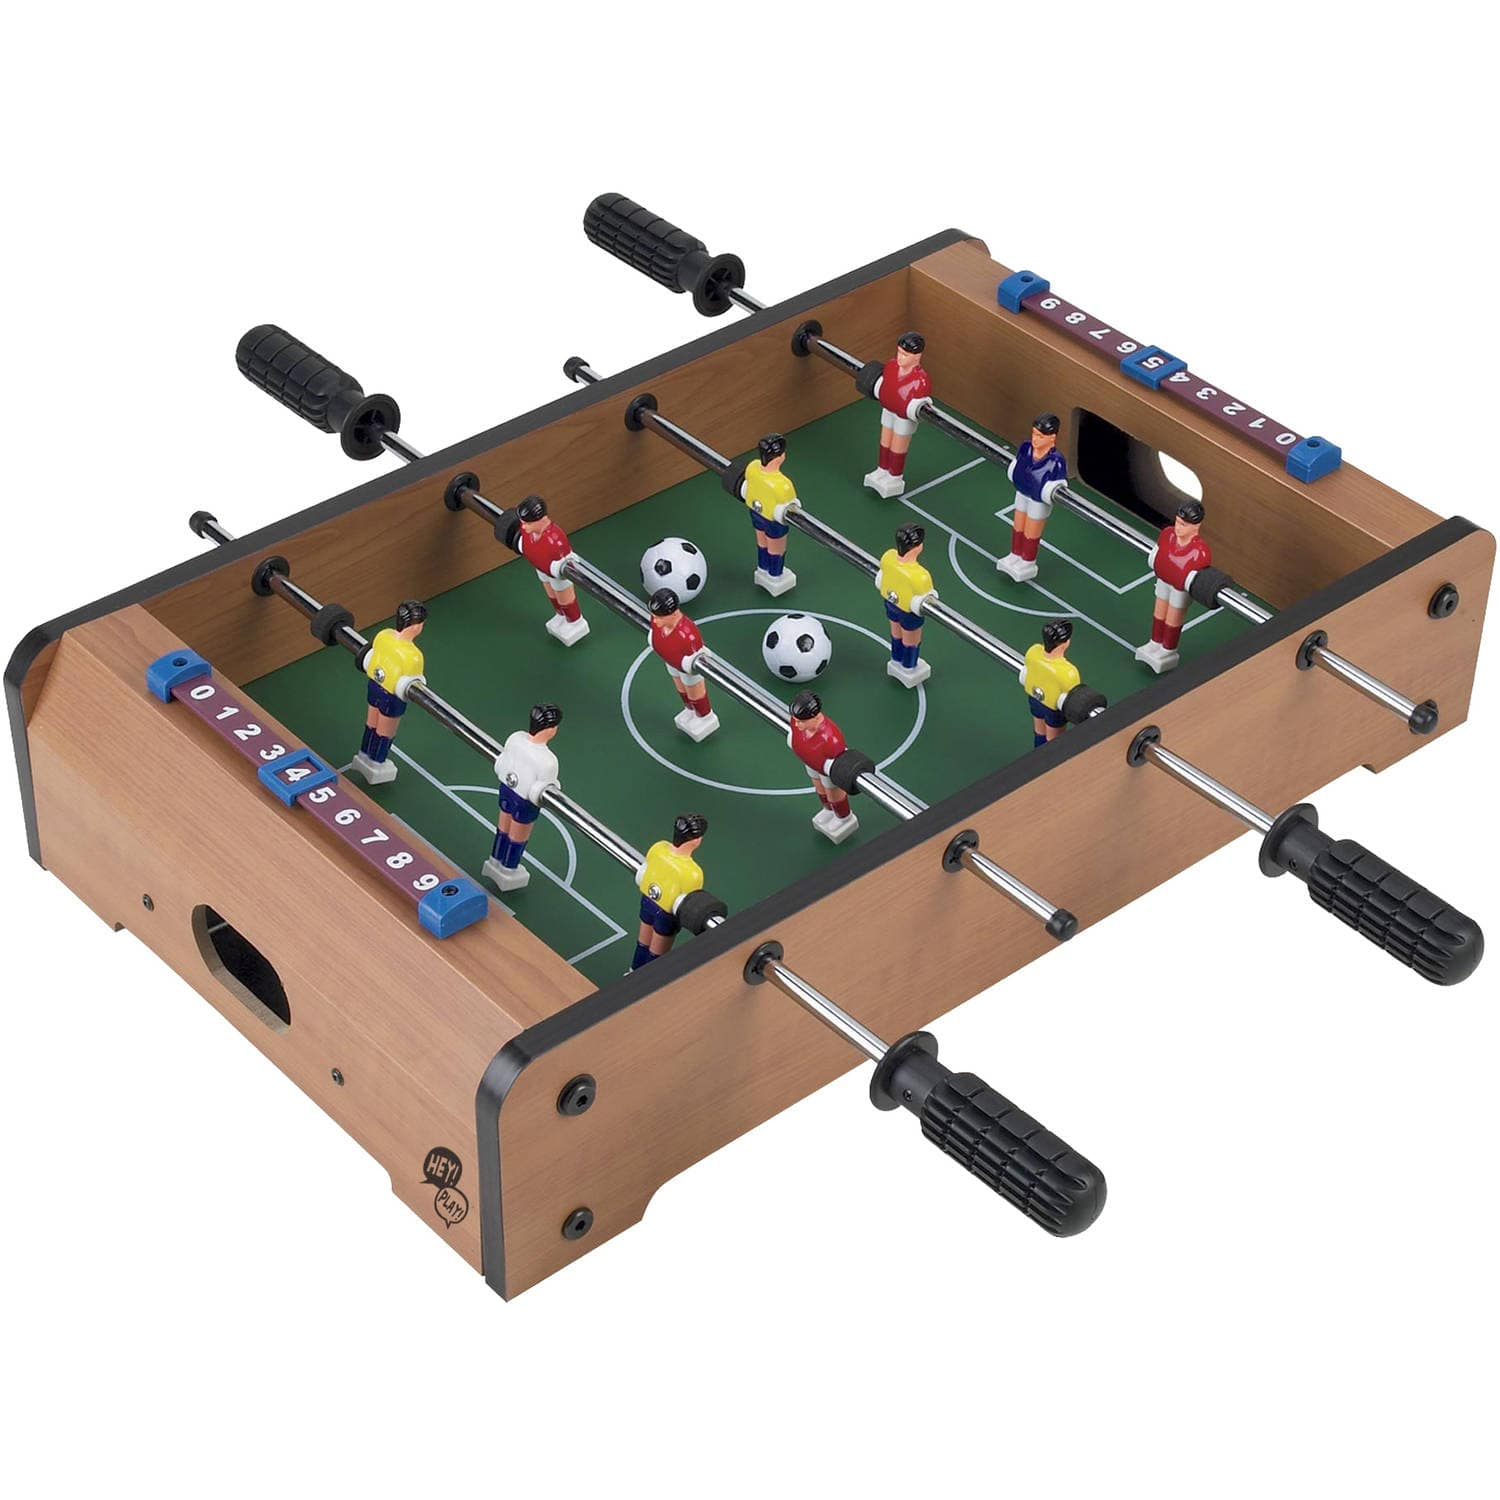 Tabletop Foosball - Portable Mini Table Football / Soccer Game Set - $16.44